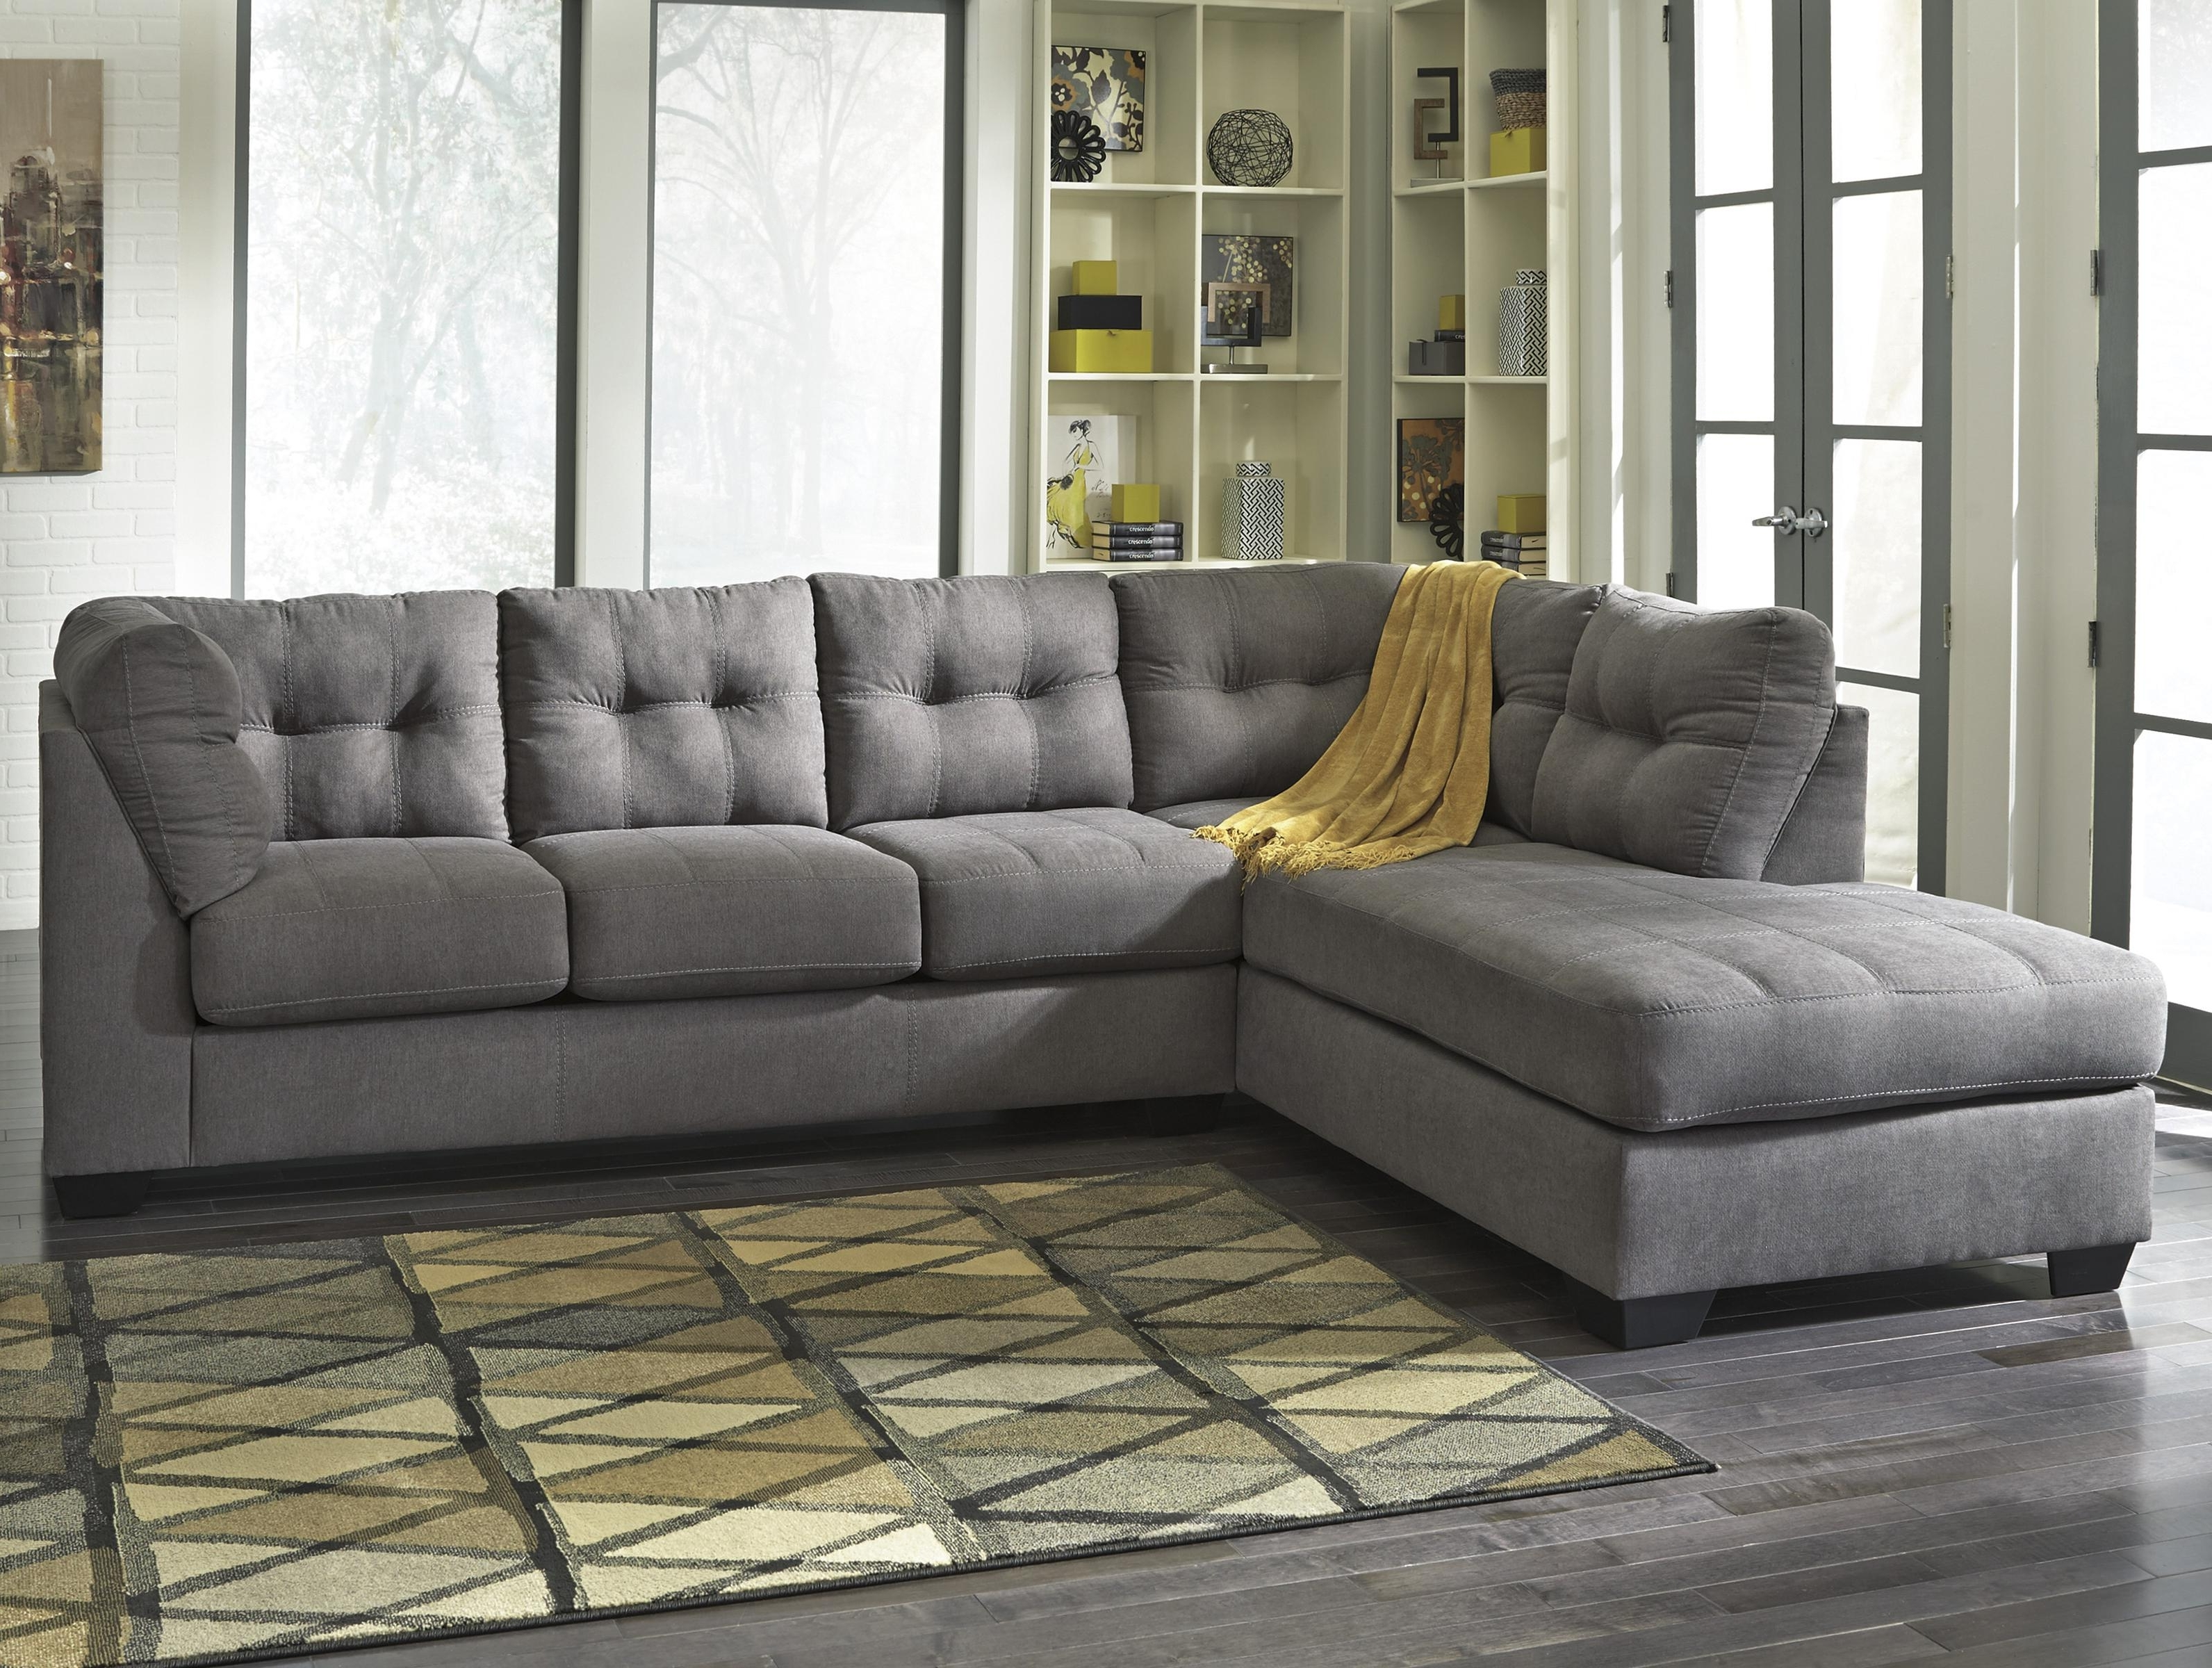 Memphis Sectional Sofas Throughout Best And Newest Benchcraftashley Maier – Charcoal 2 Piece Sectional With Left (View 8 of 20)